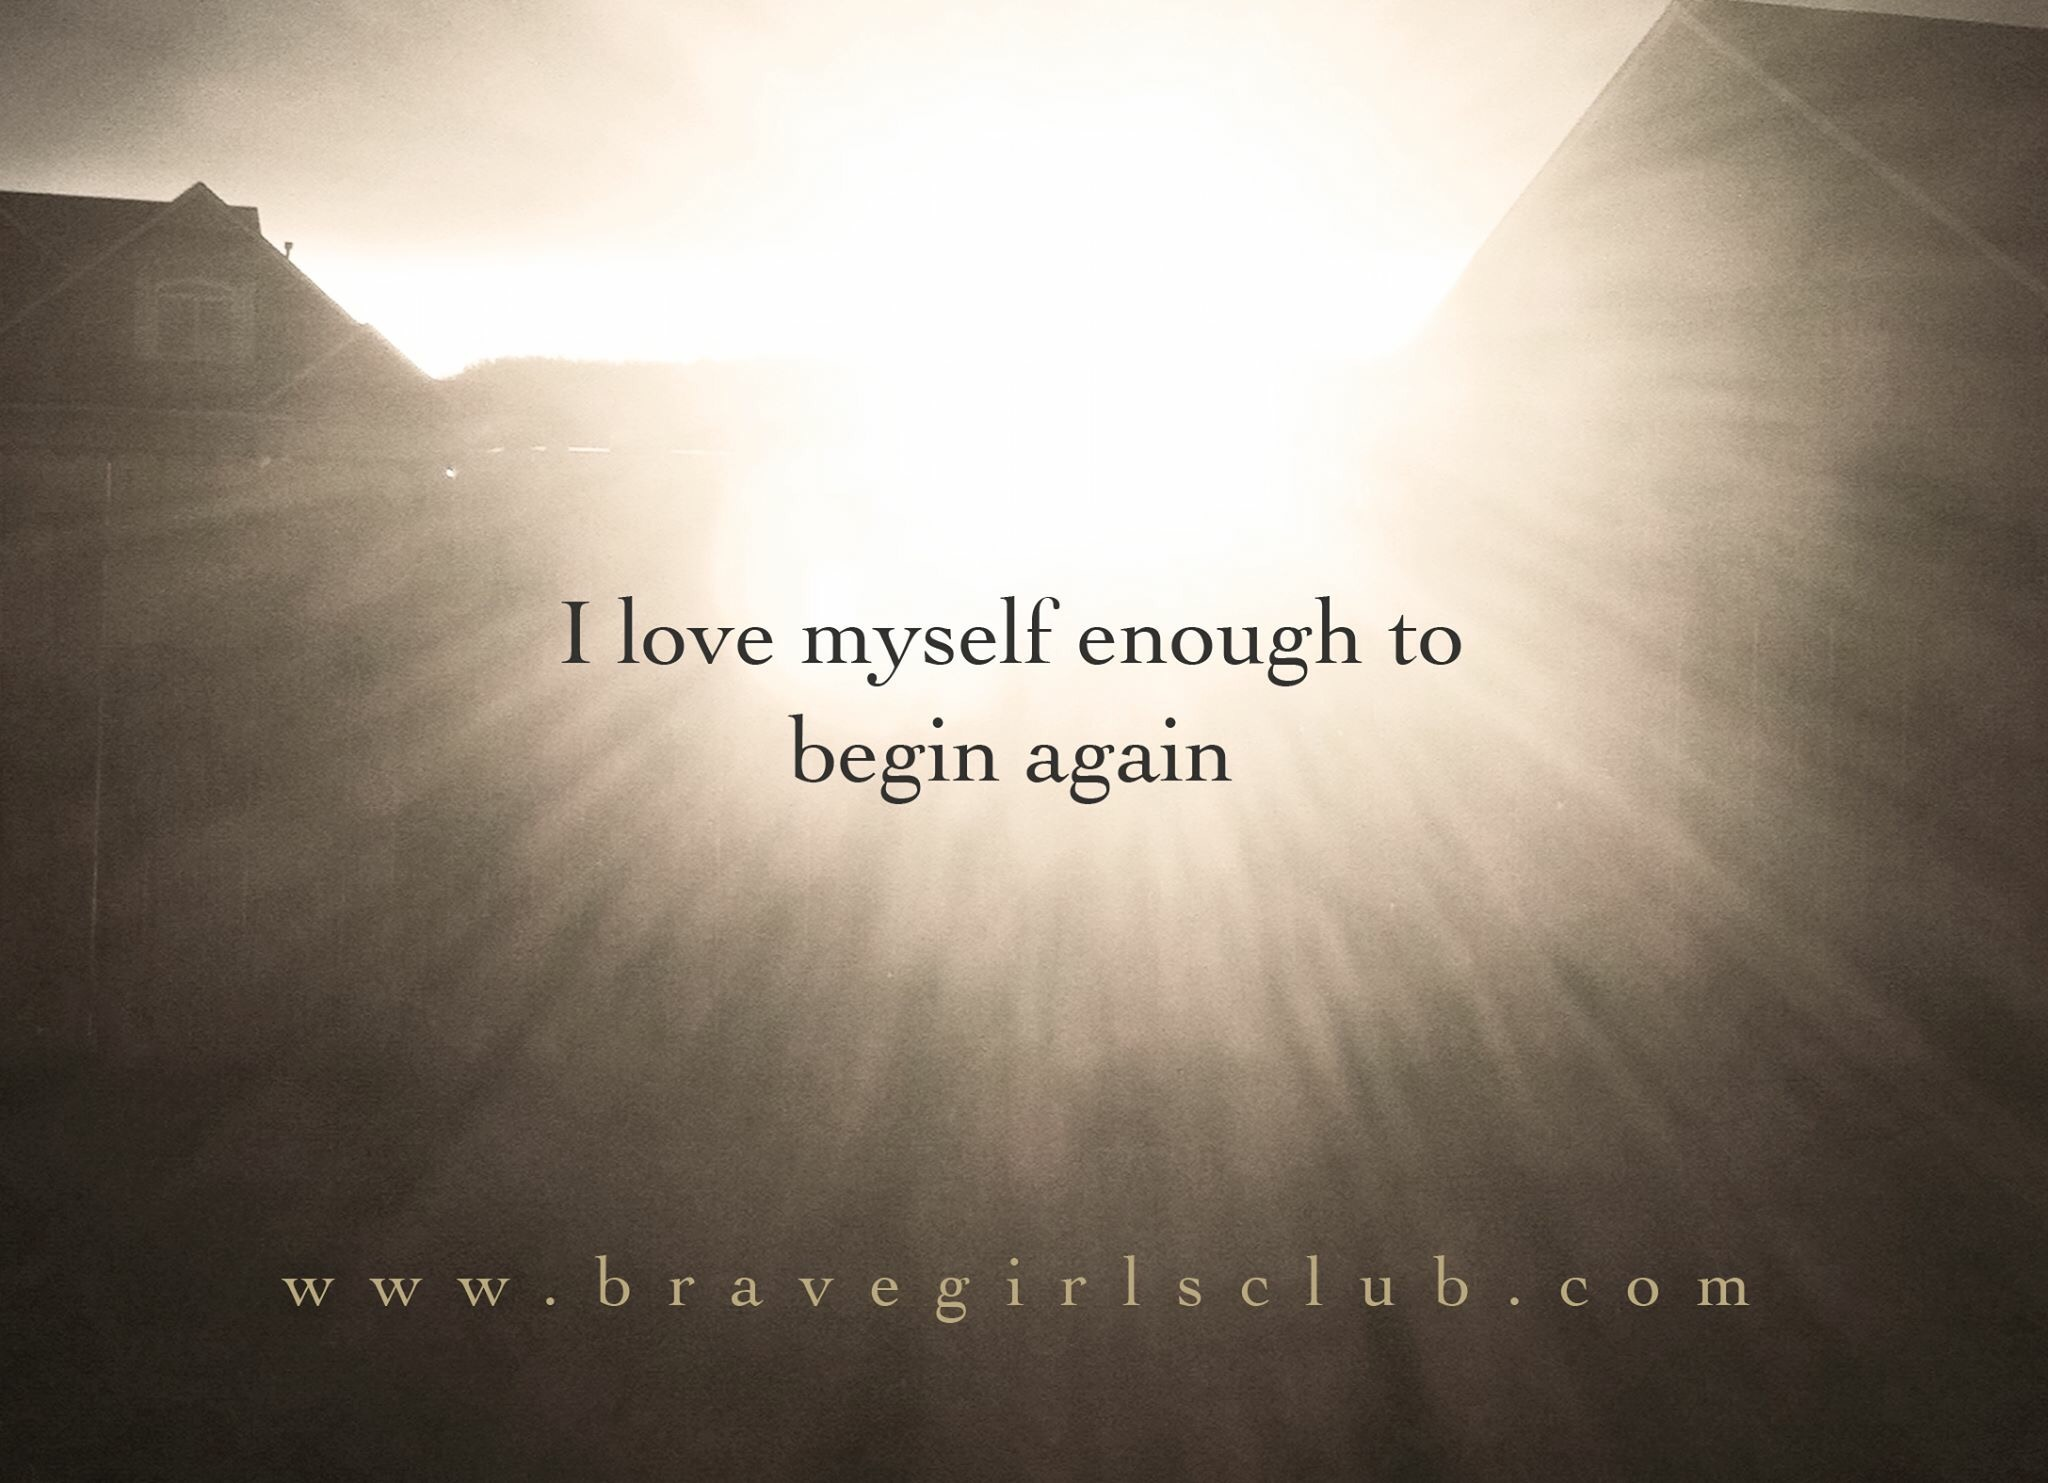 https://www.facebook.com/BraveGirlsClub/photos/a.143945461409.136897.138801301409/10153709766621410/?type=3